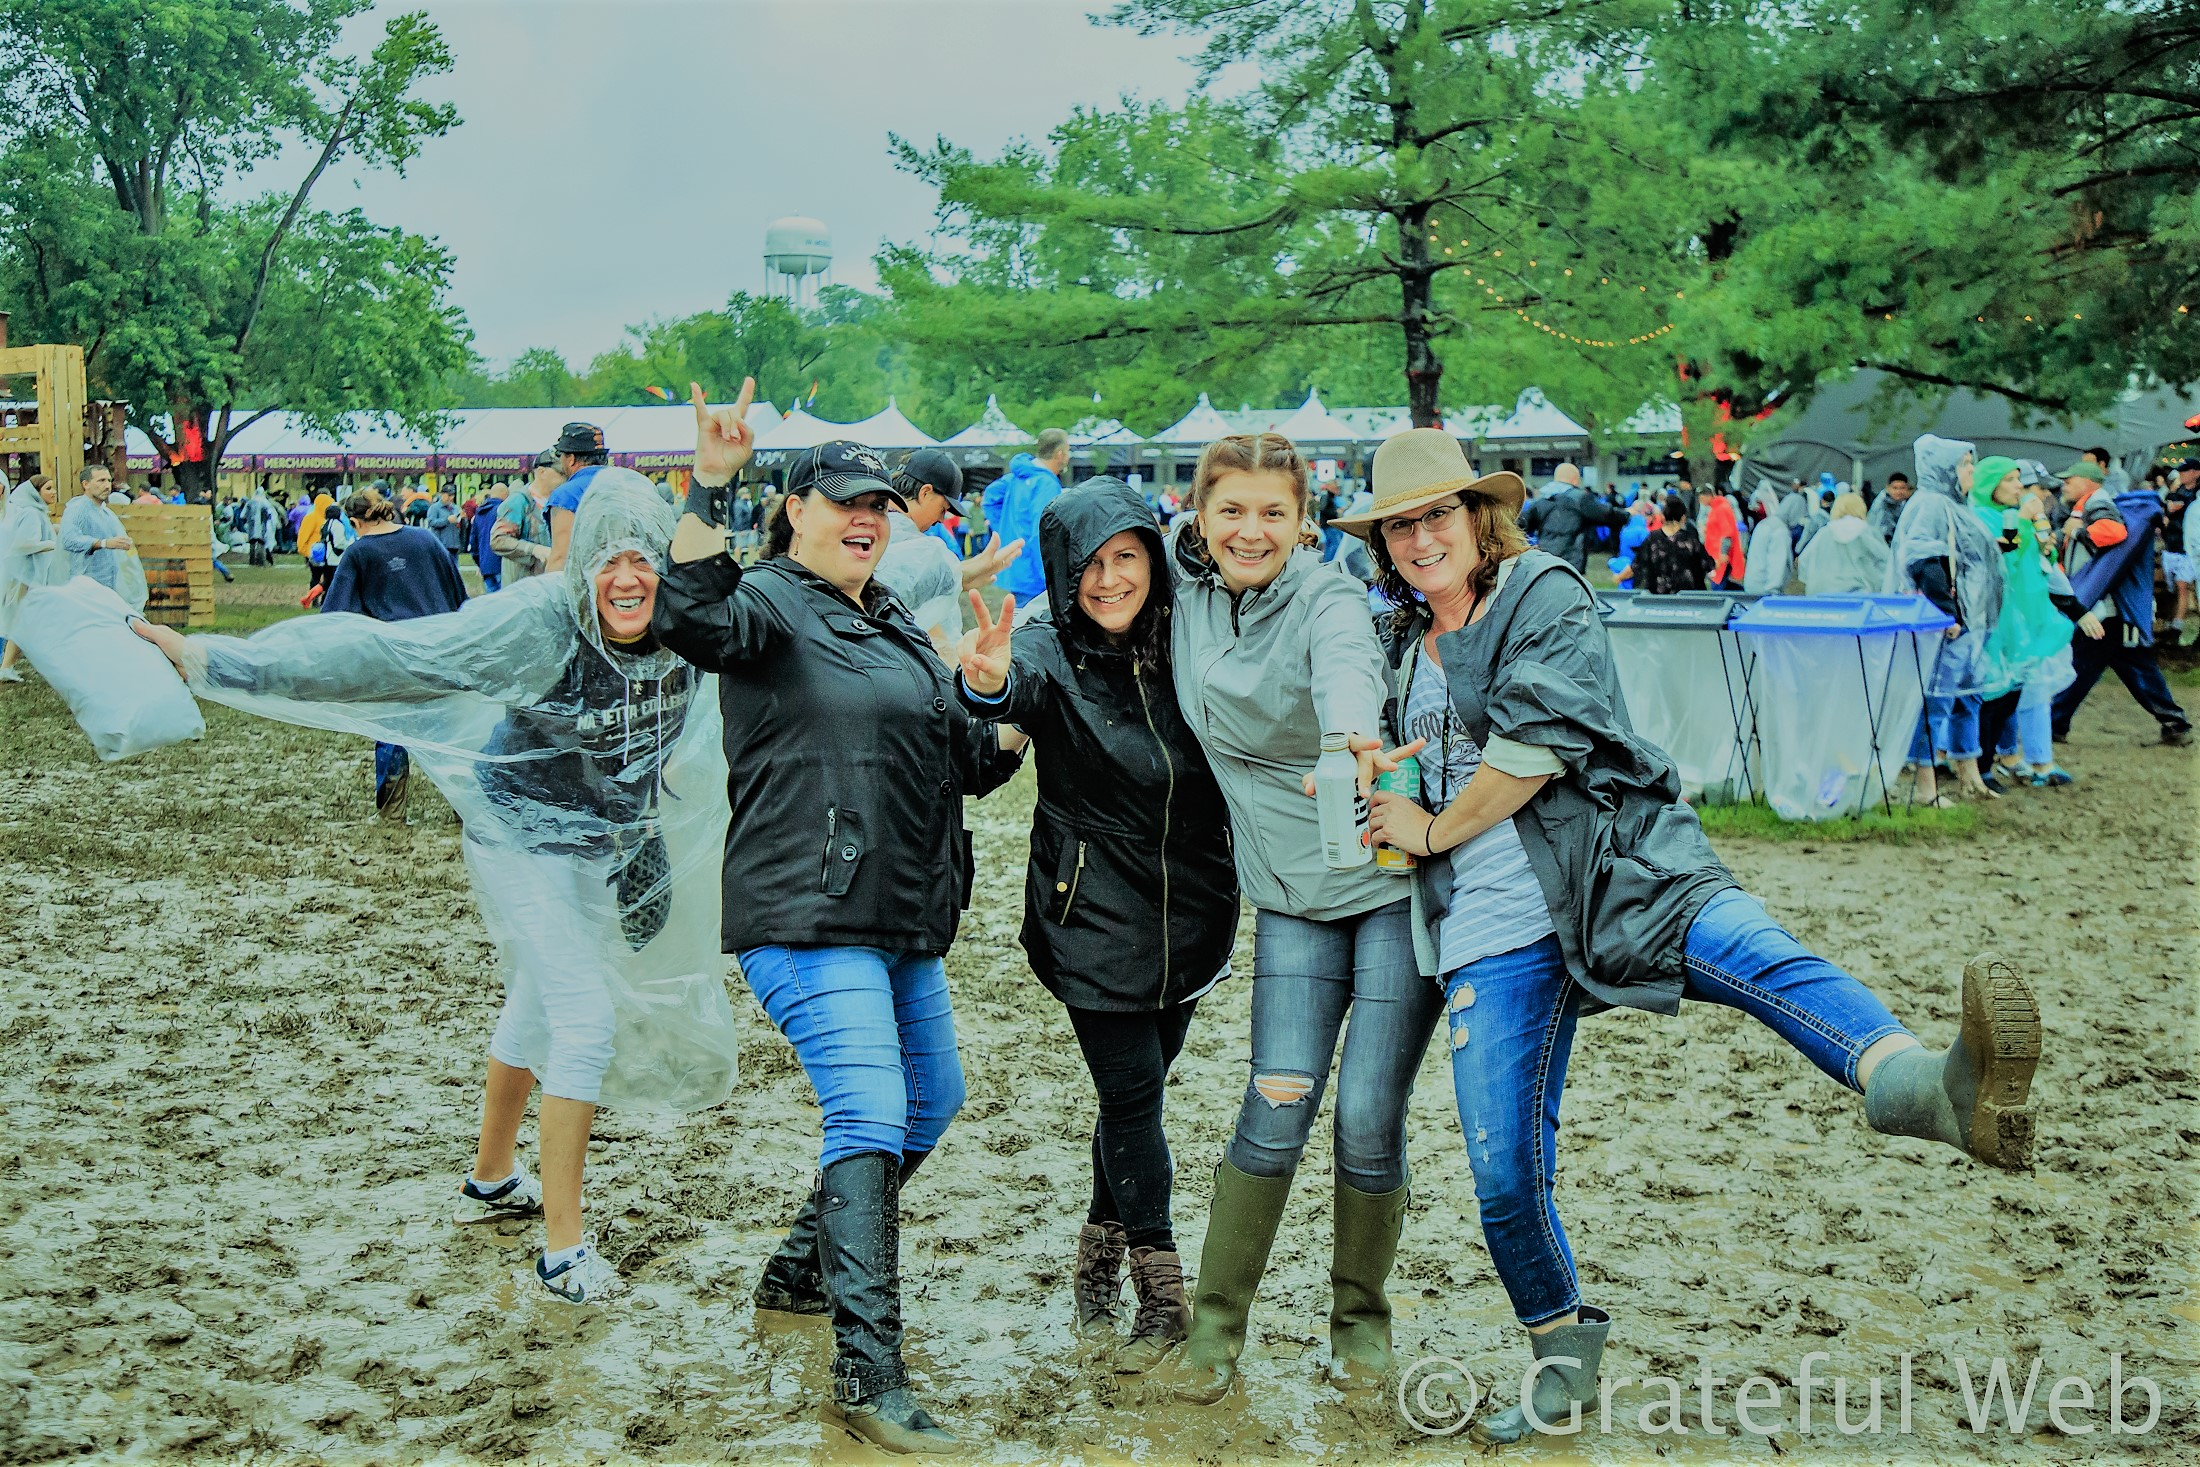 A rainy and fun day @ Bourbon and Beyond 2018